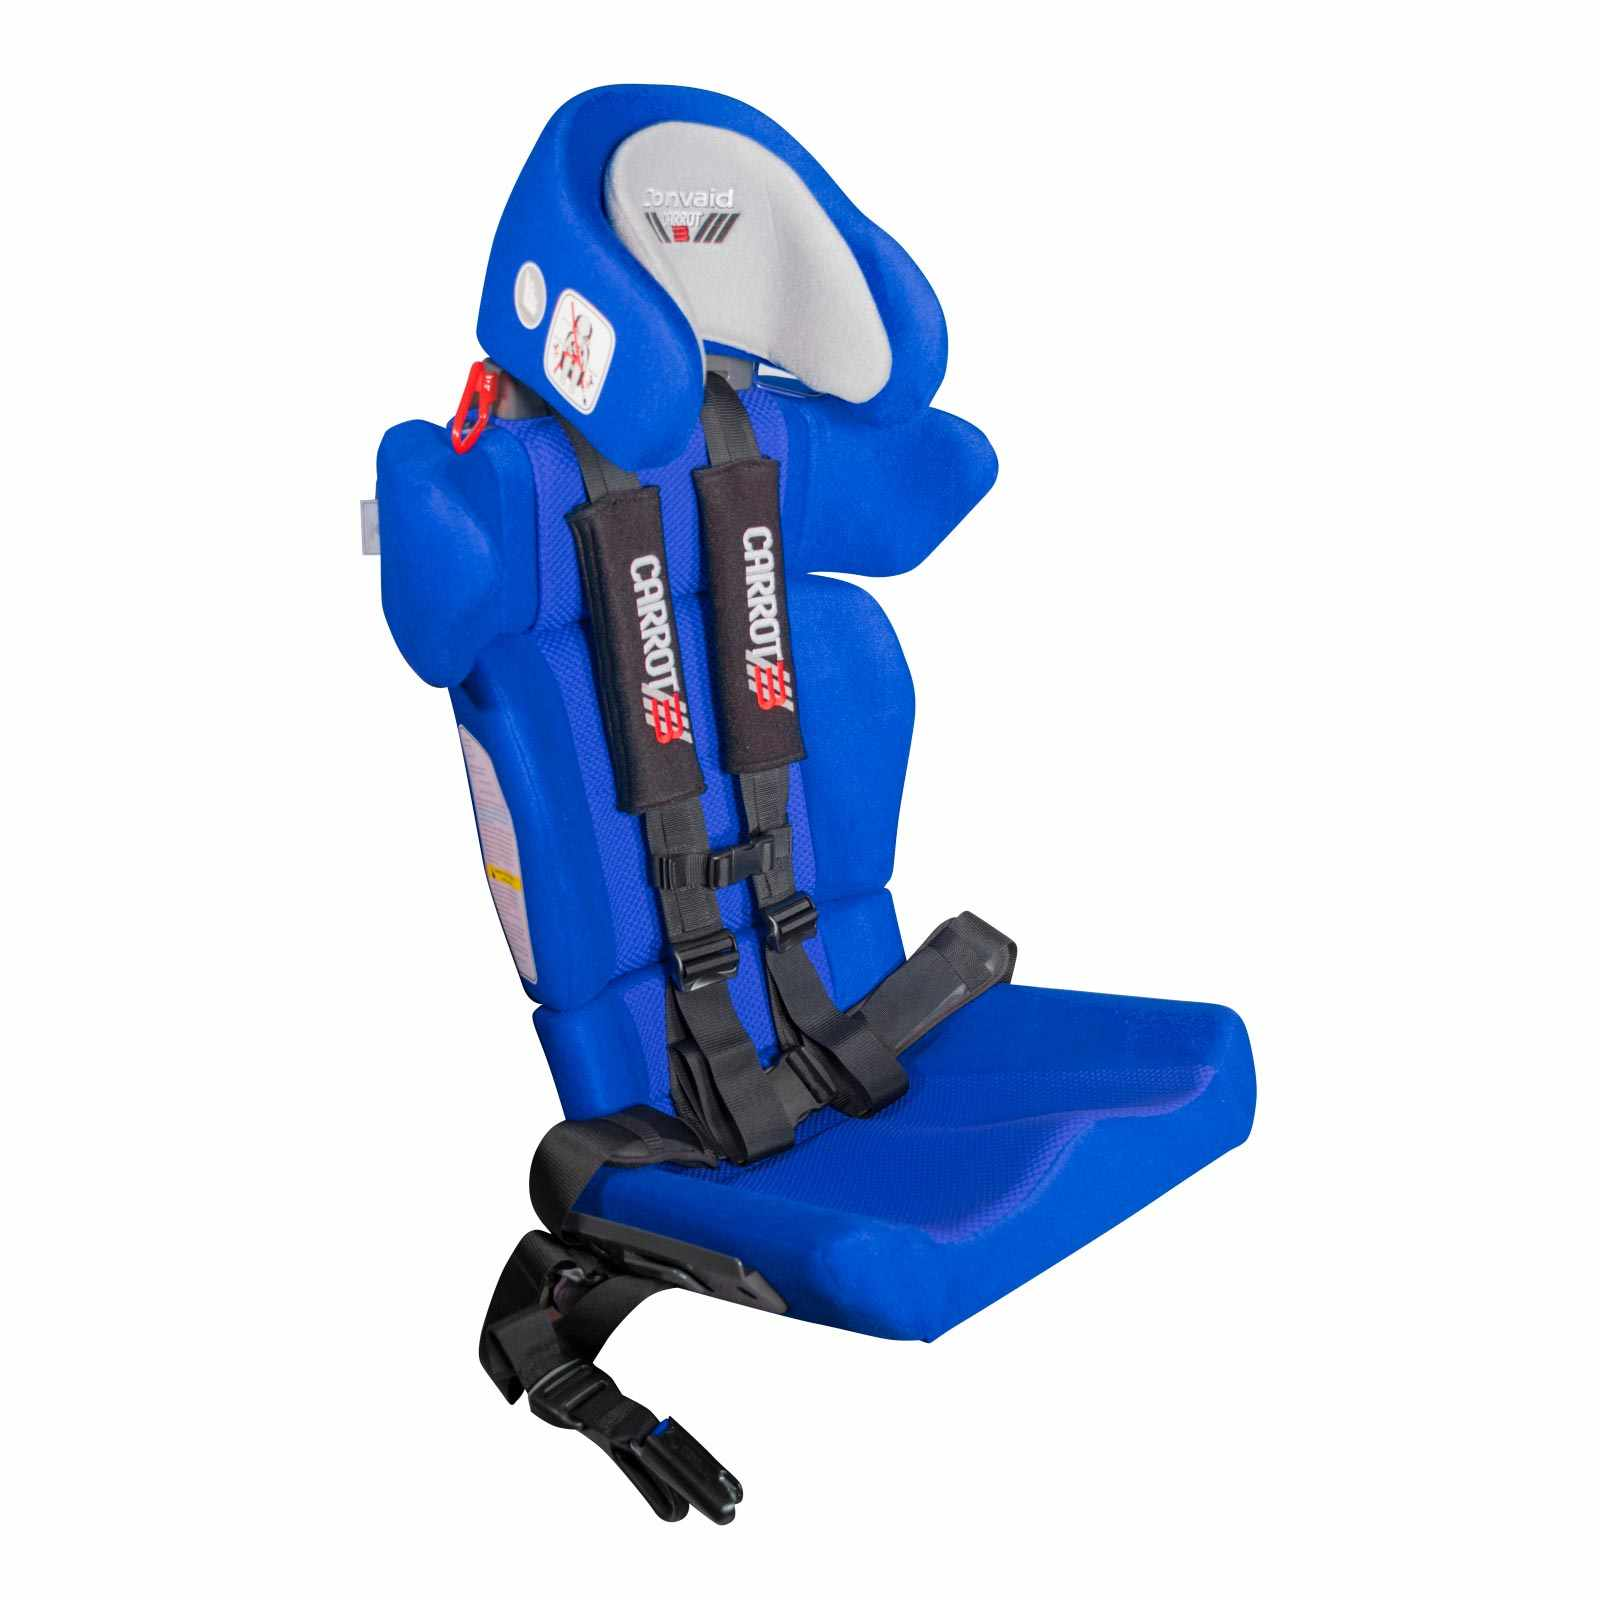 Convaid Carrot 3 Booster Seat Child Restraint System